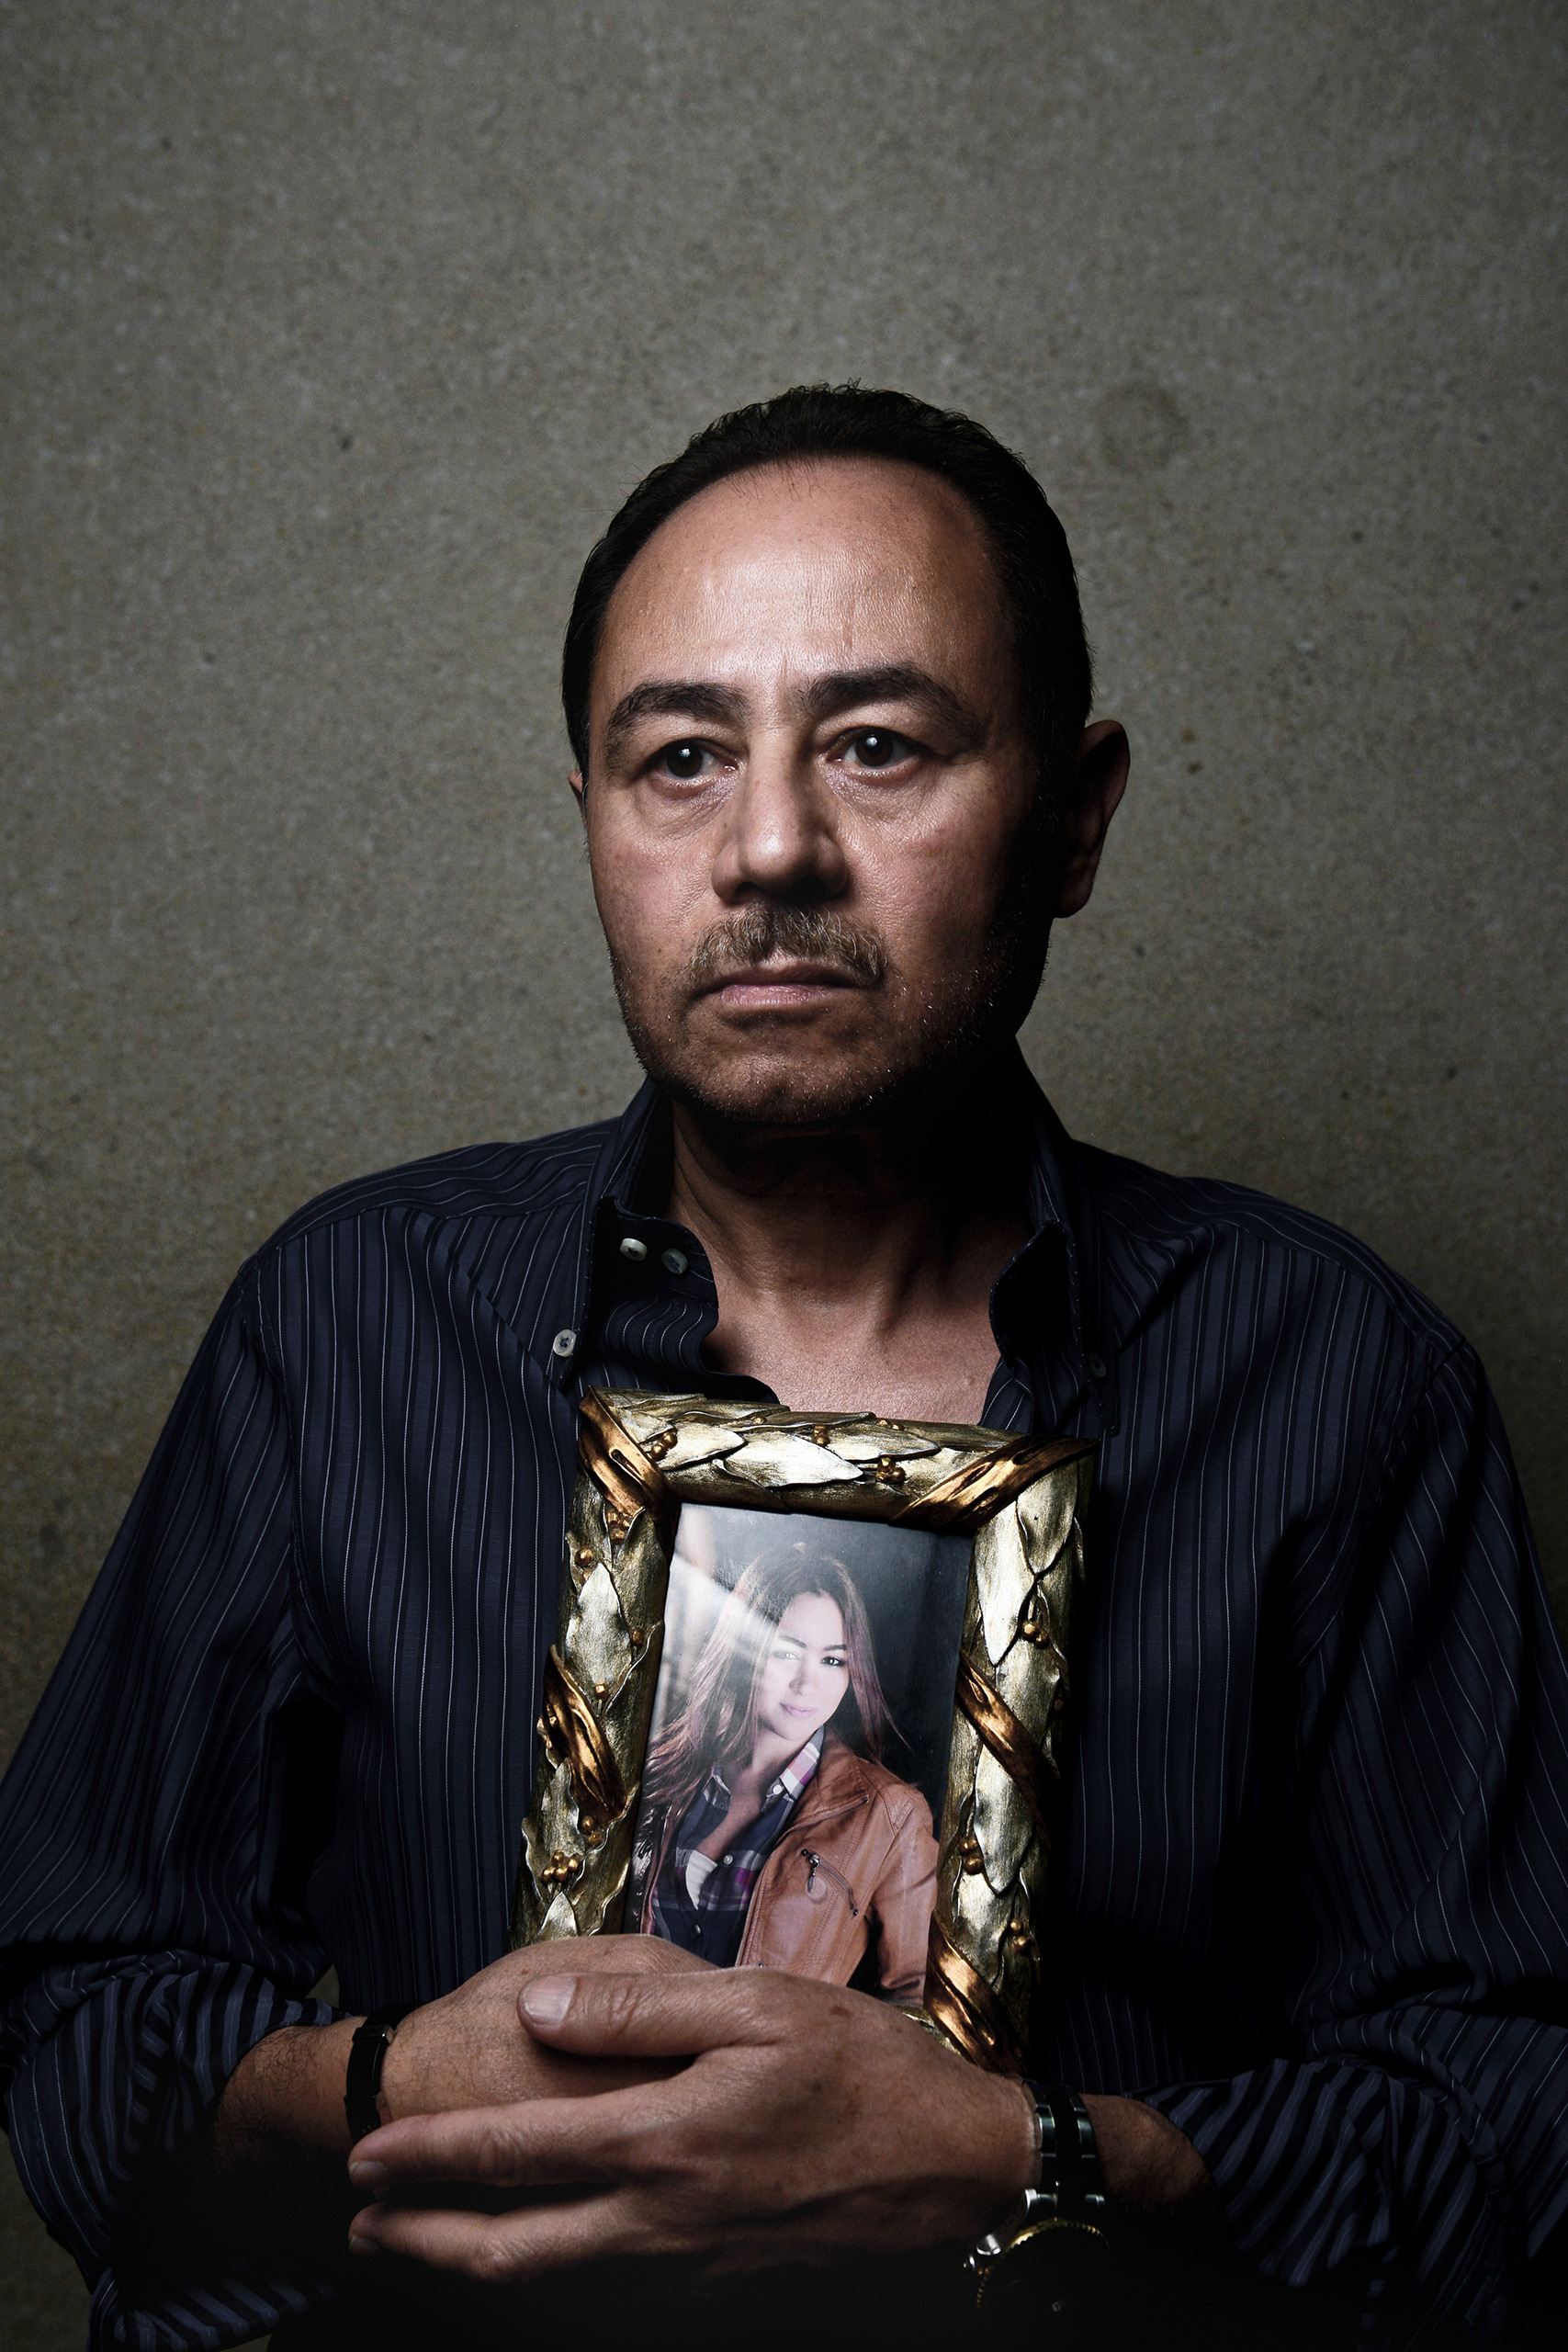 Hany Farag, father of flight attendant Yara Hany who was onboard EgyptAir Flight 804, which crashed on its way from Paris to Cairo on May 19.From  The Losses of EgyptAir Flight 804.